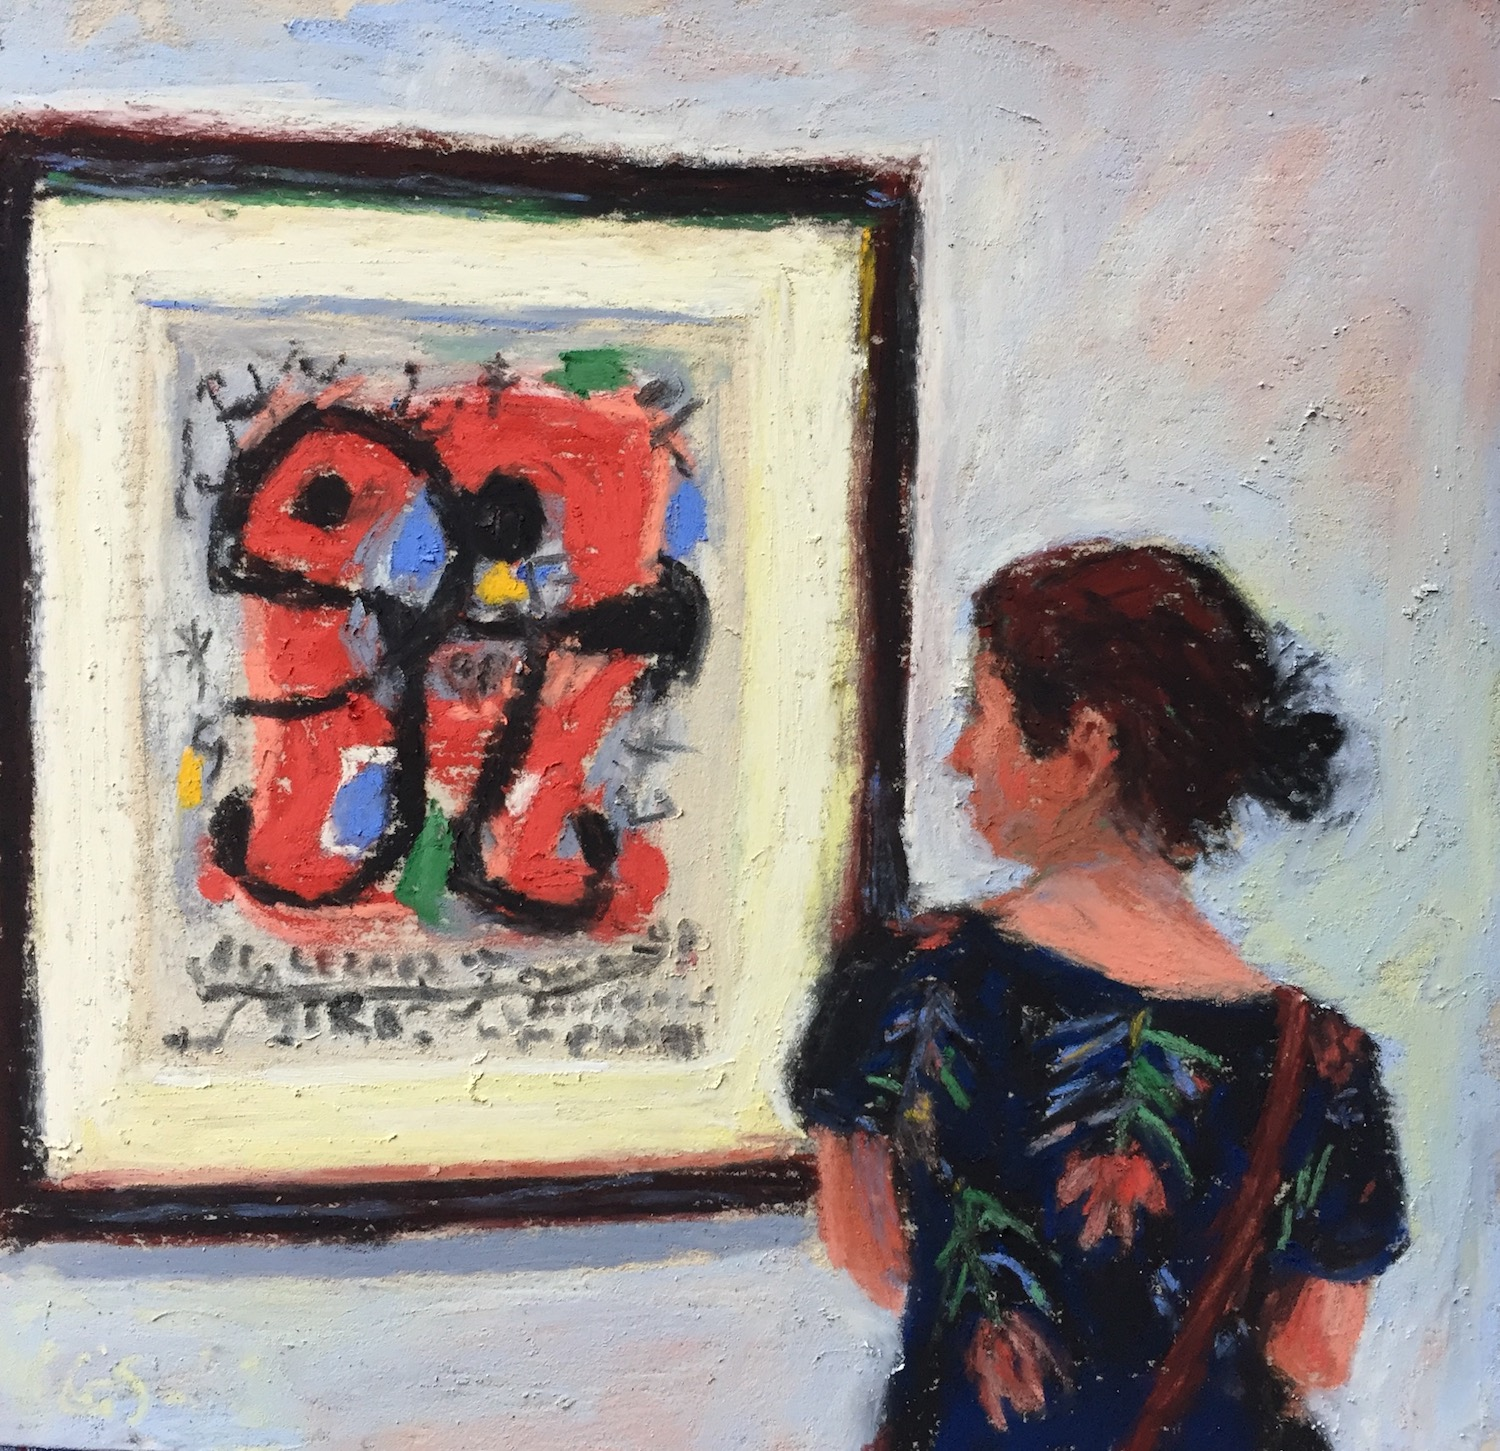 """Doing the work: Day 21 """"Pondering Miro,"""" Unison pastels on UART 500 paper, 6 x 6 in"""